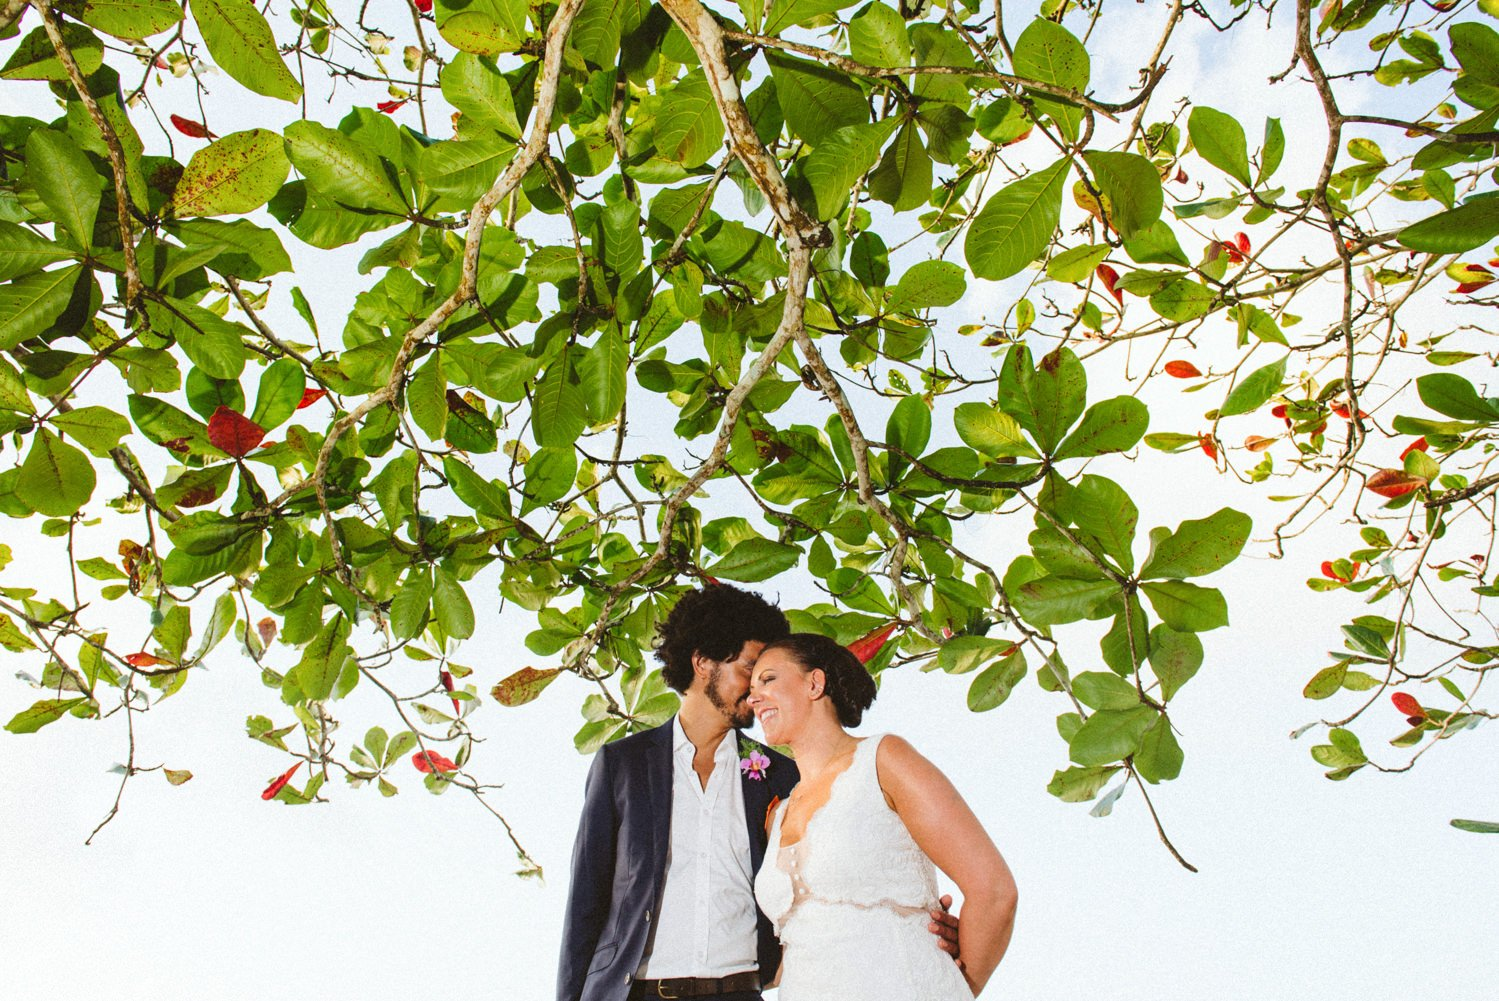 Tobago wedding portrait Babb photo